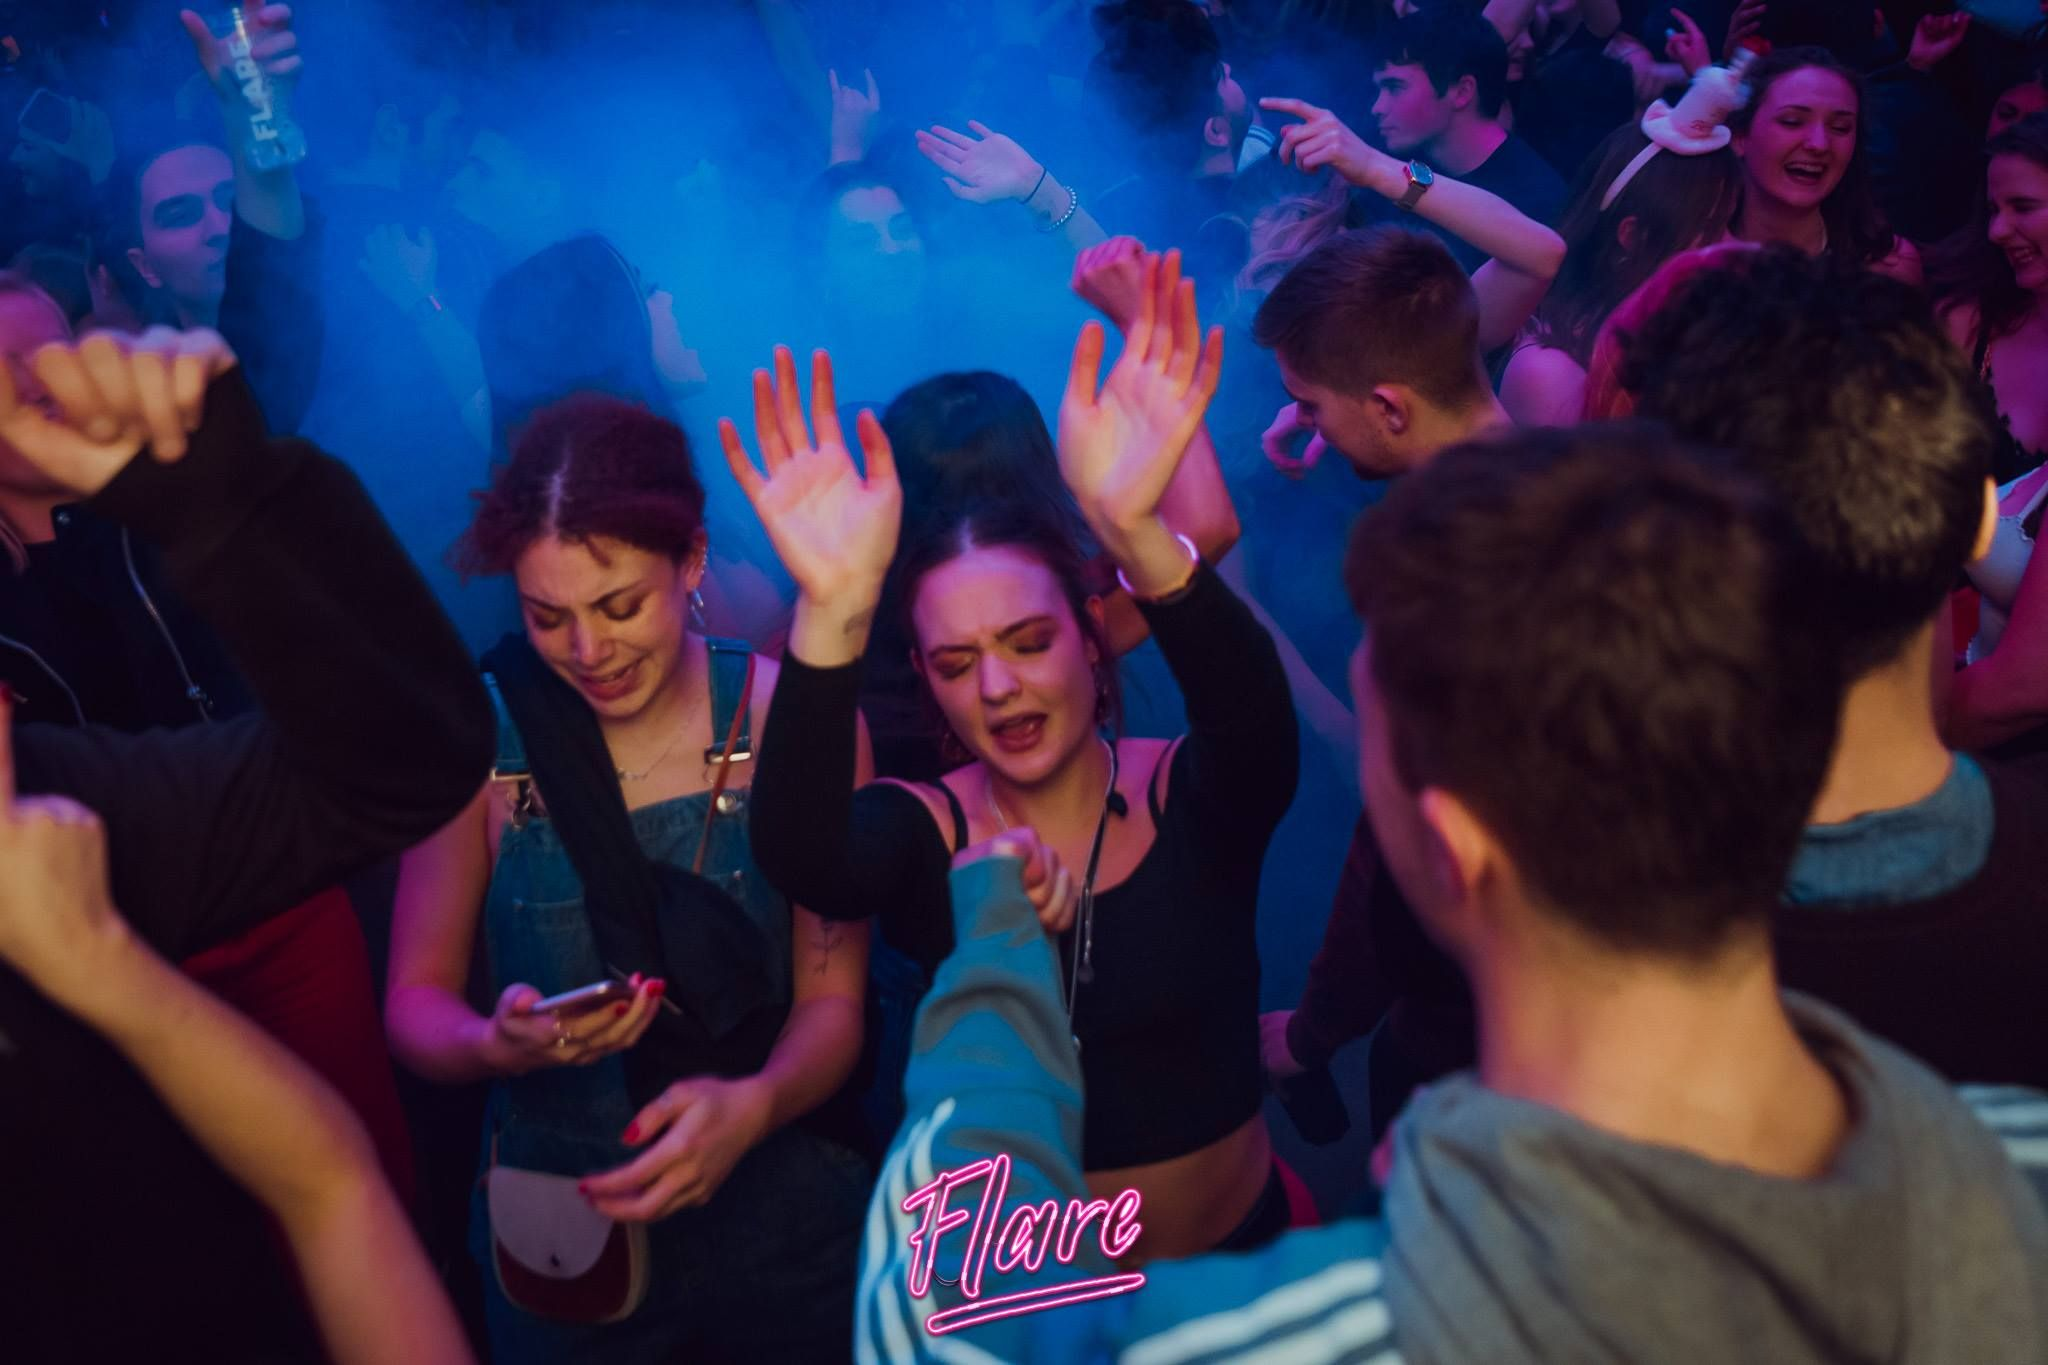 Image may contain: Leisure Activities, Disco, Night Life, Night Club, Party, Club, Human, Person